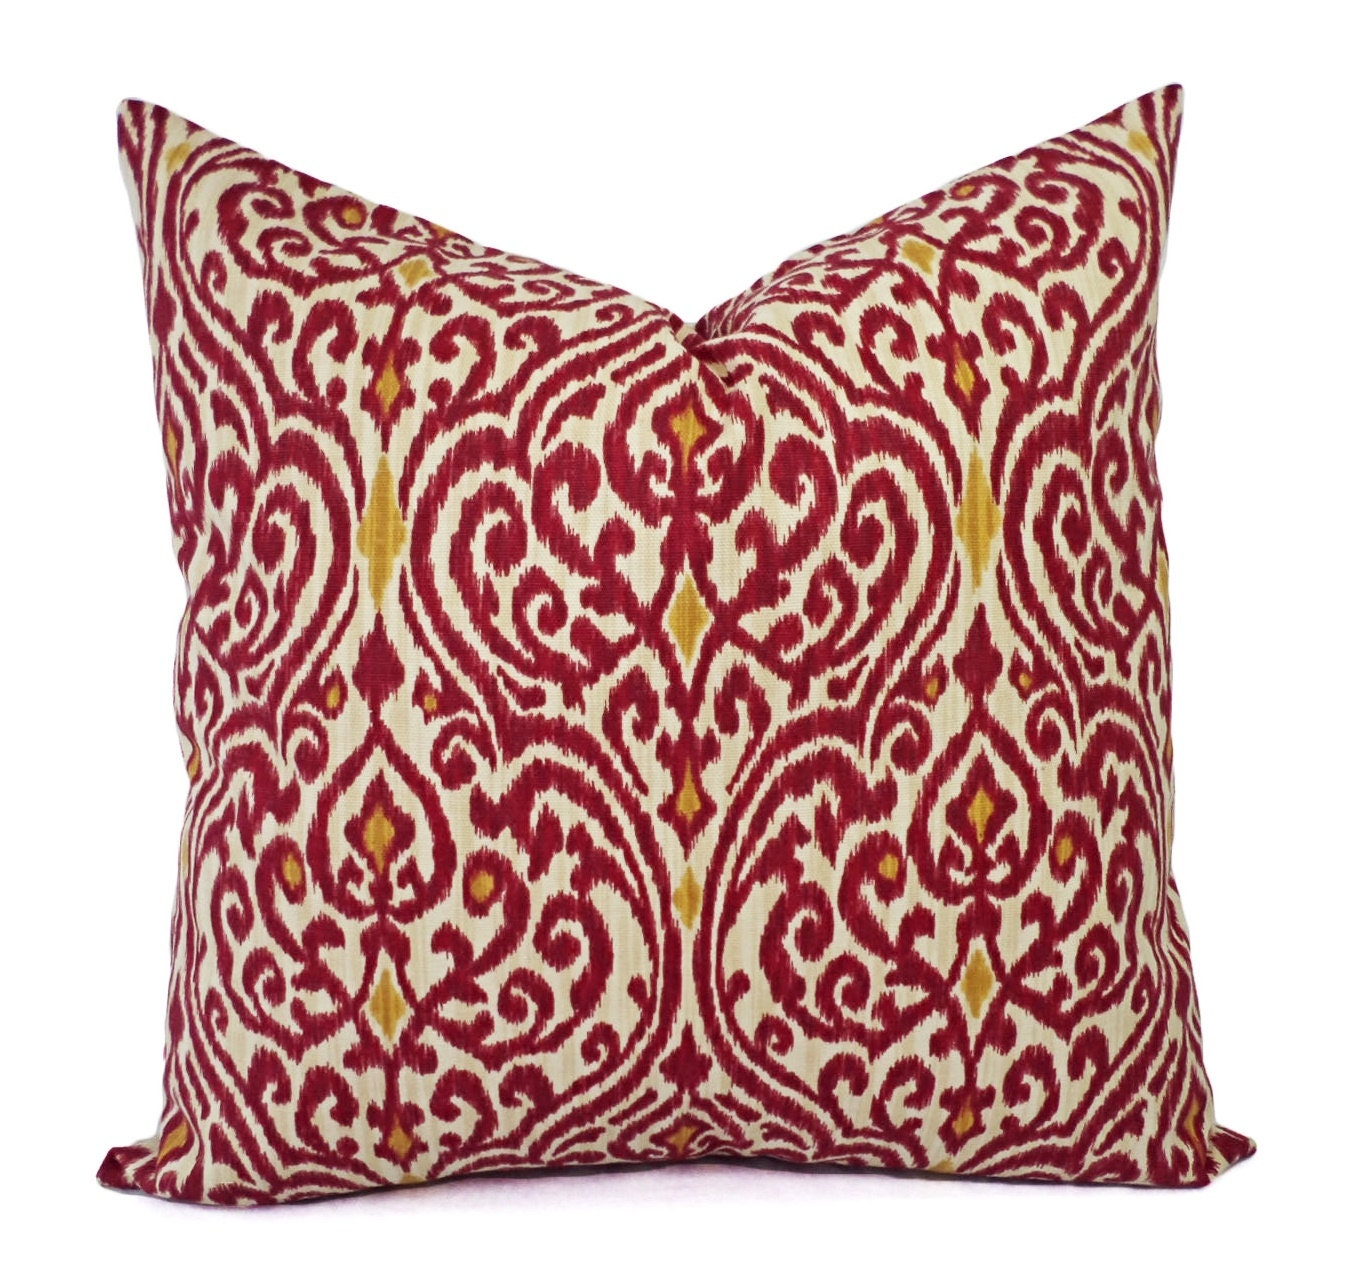 Two Ikat Pillow Covers Red and Gold Ikat Throw Pillows Red